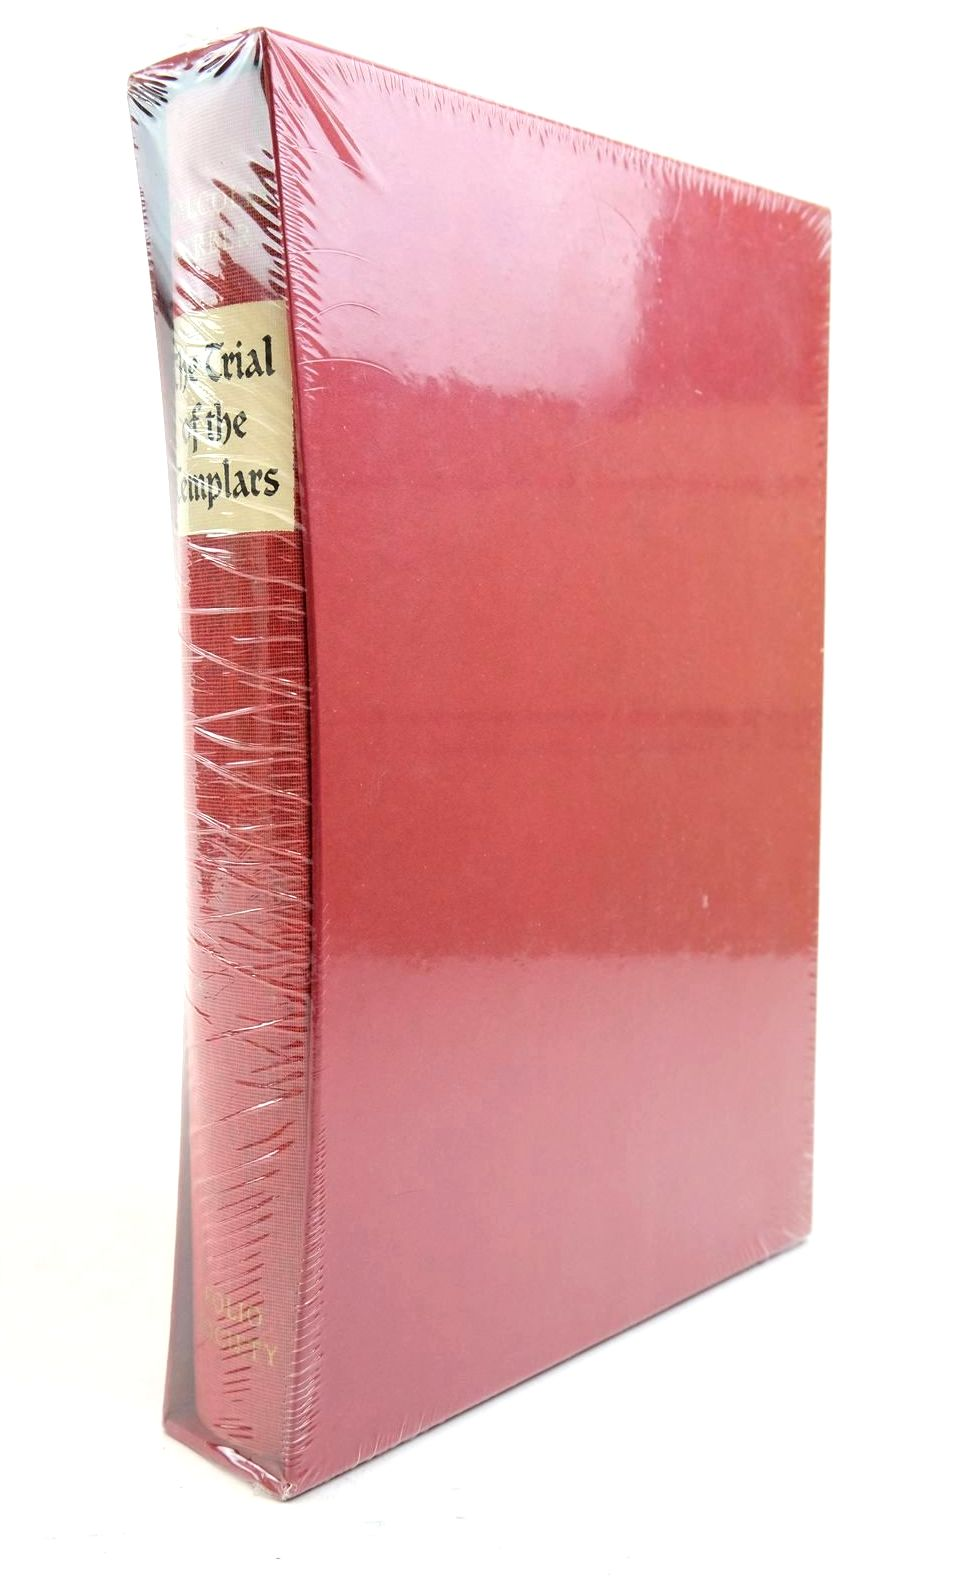 Photo of THE TRIAL OF THE TEMPLARS written by Barber, Malcolm published by Folio Society (STOCK CODE: 1321119)  for sale by Stella & Rose's Books